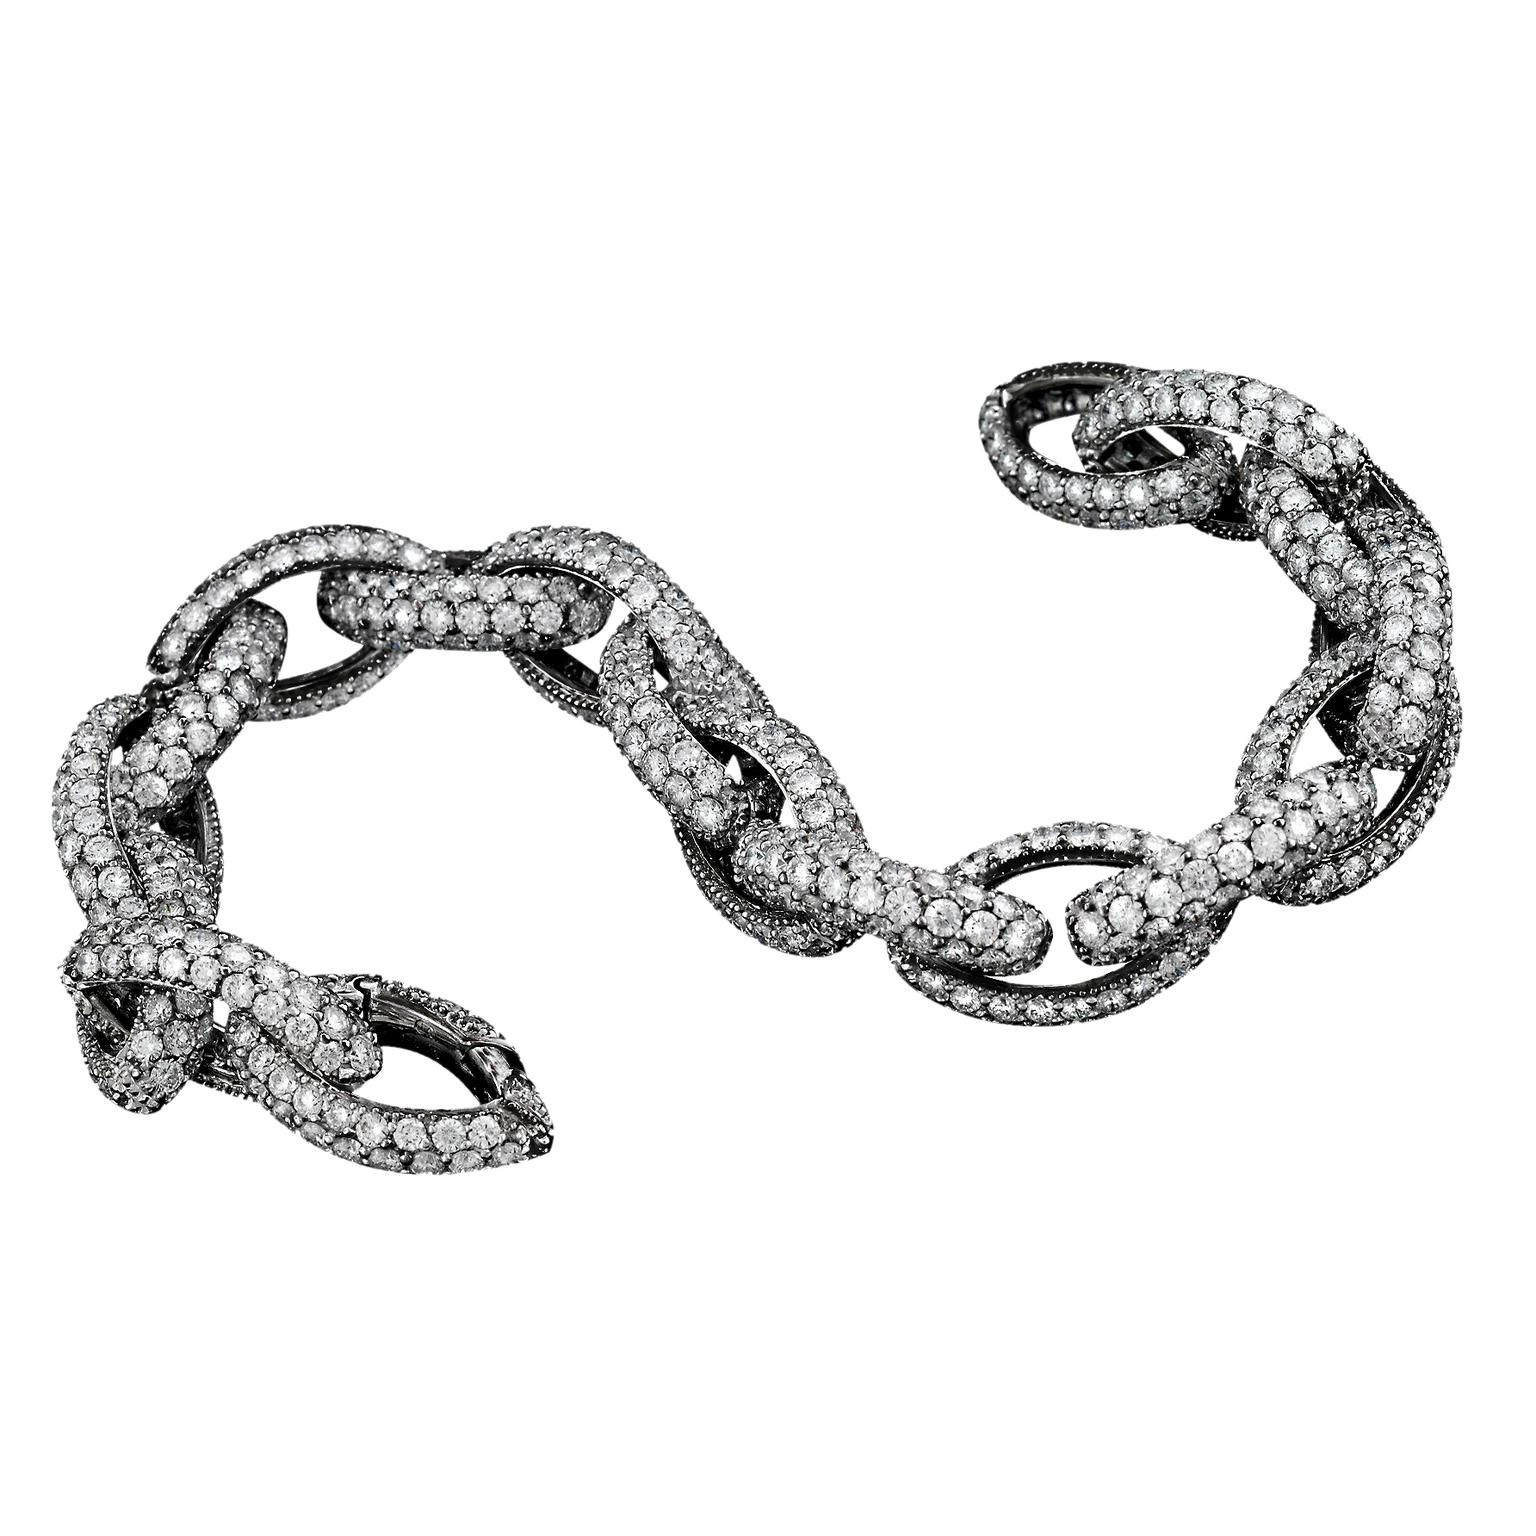 Avakian diamond Links bracelet